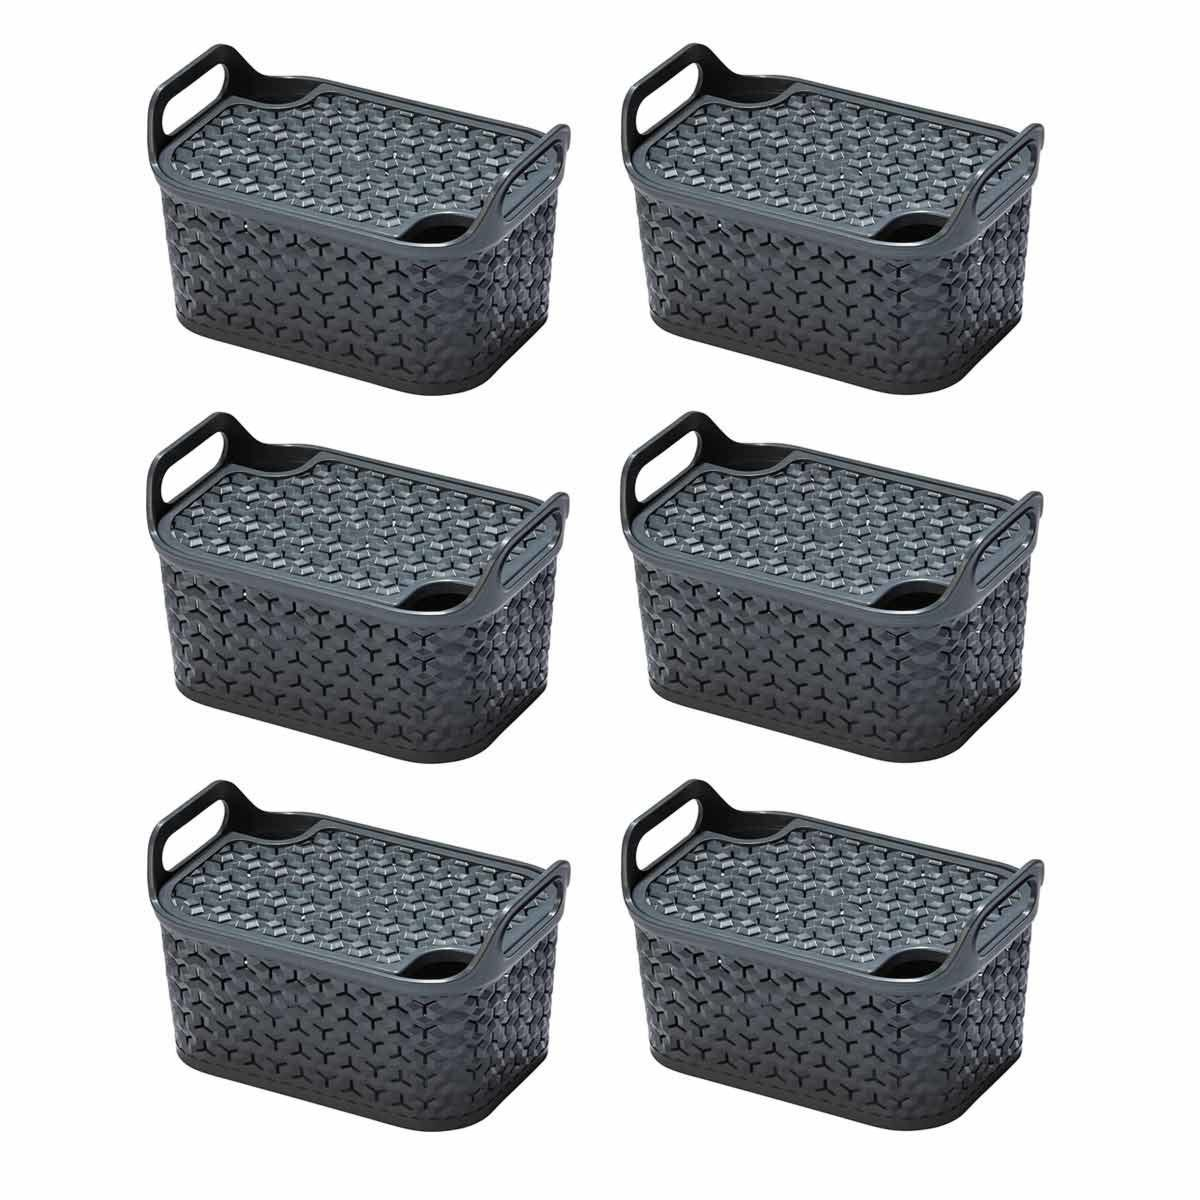 Strata Urban Store Basket with Lid 8 Litre Pack of 6 Charcoal